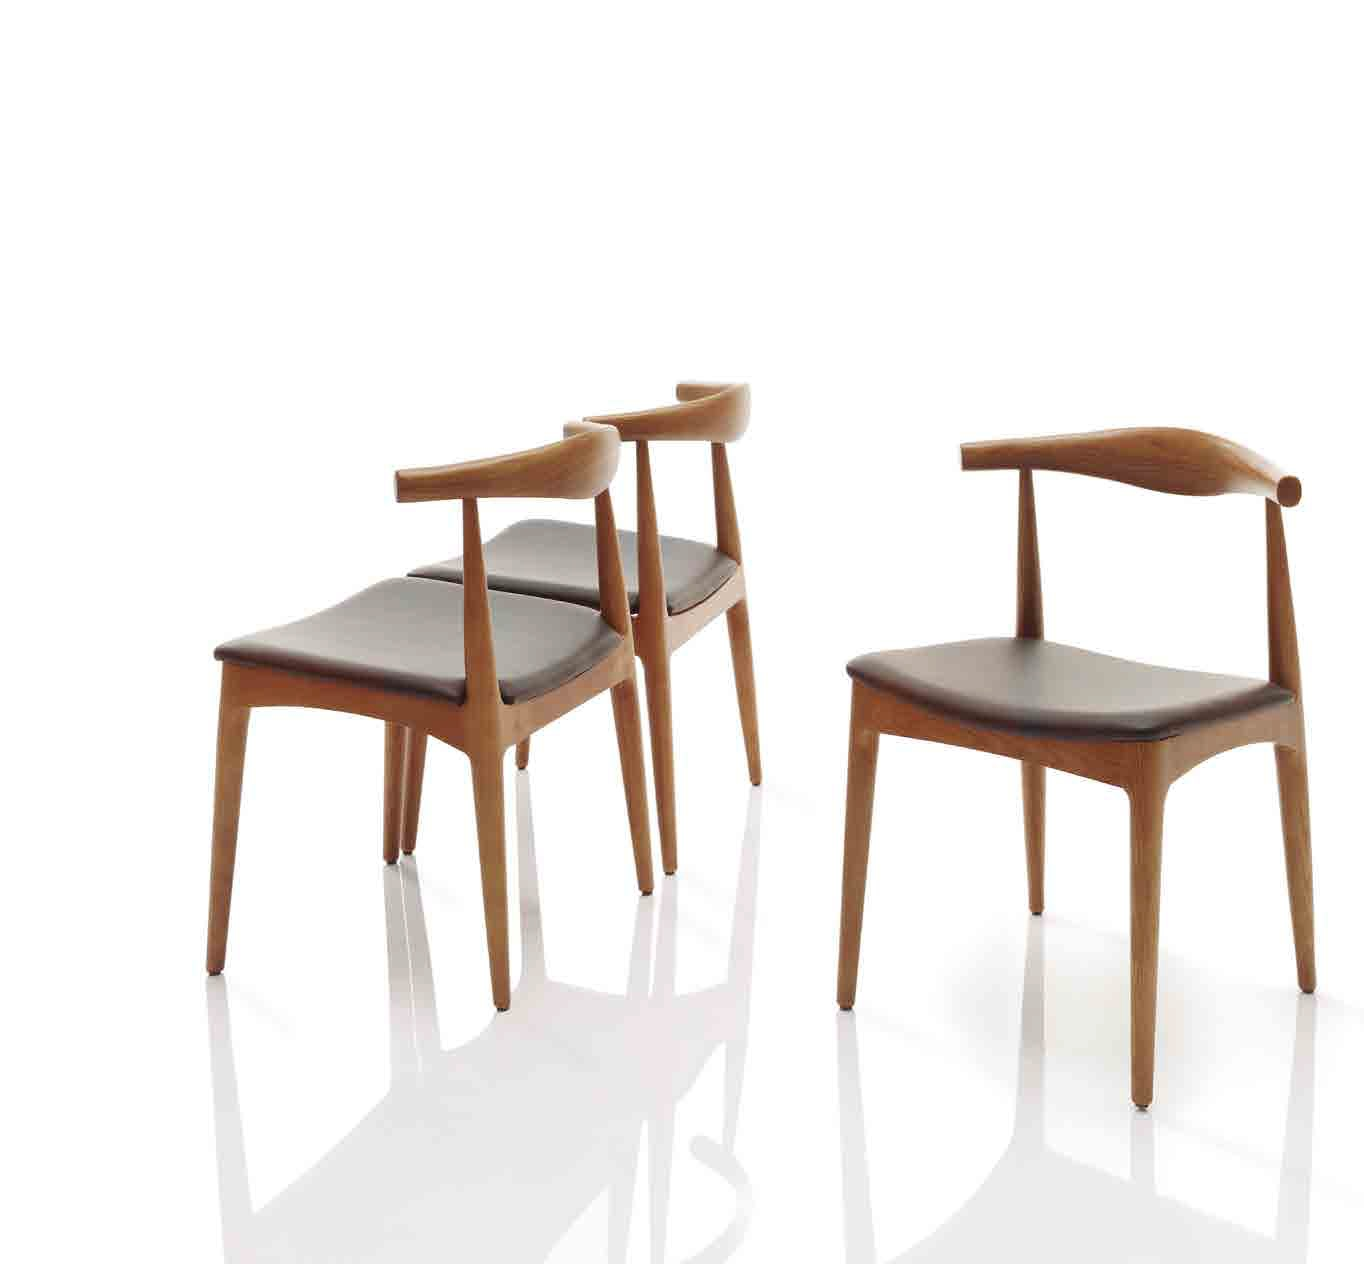 Muebles estilo nordico for Mueble nordico salon